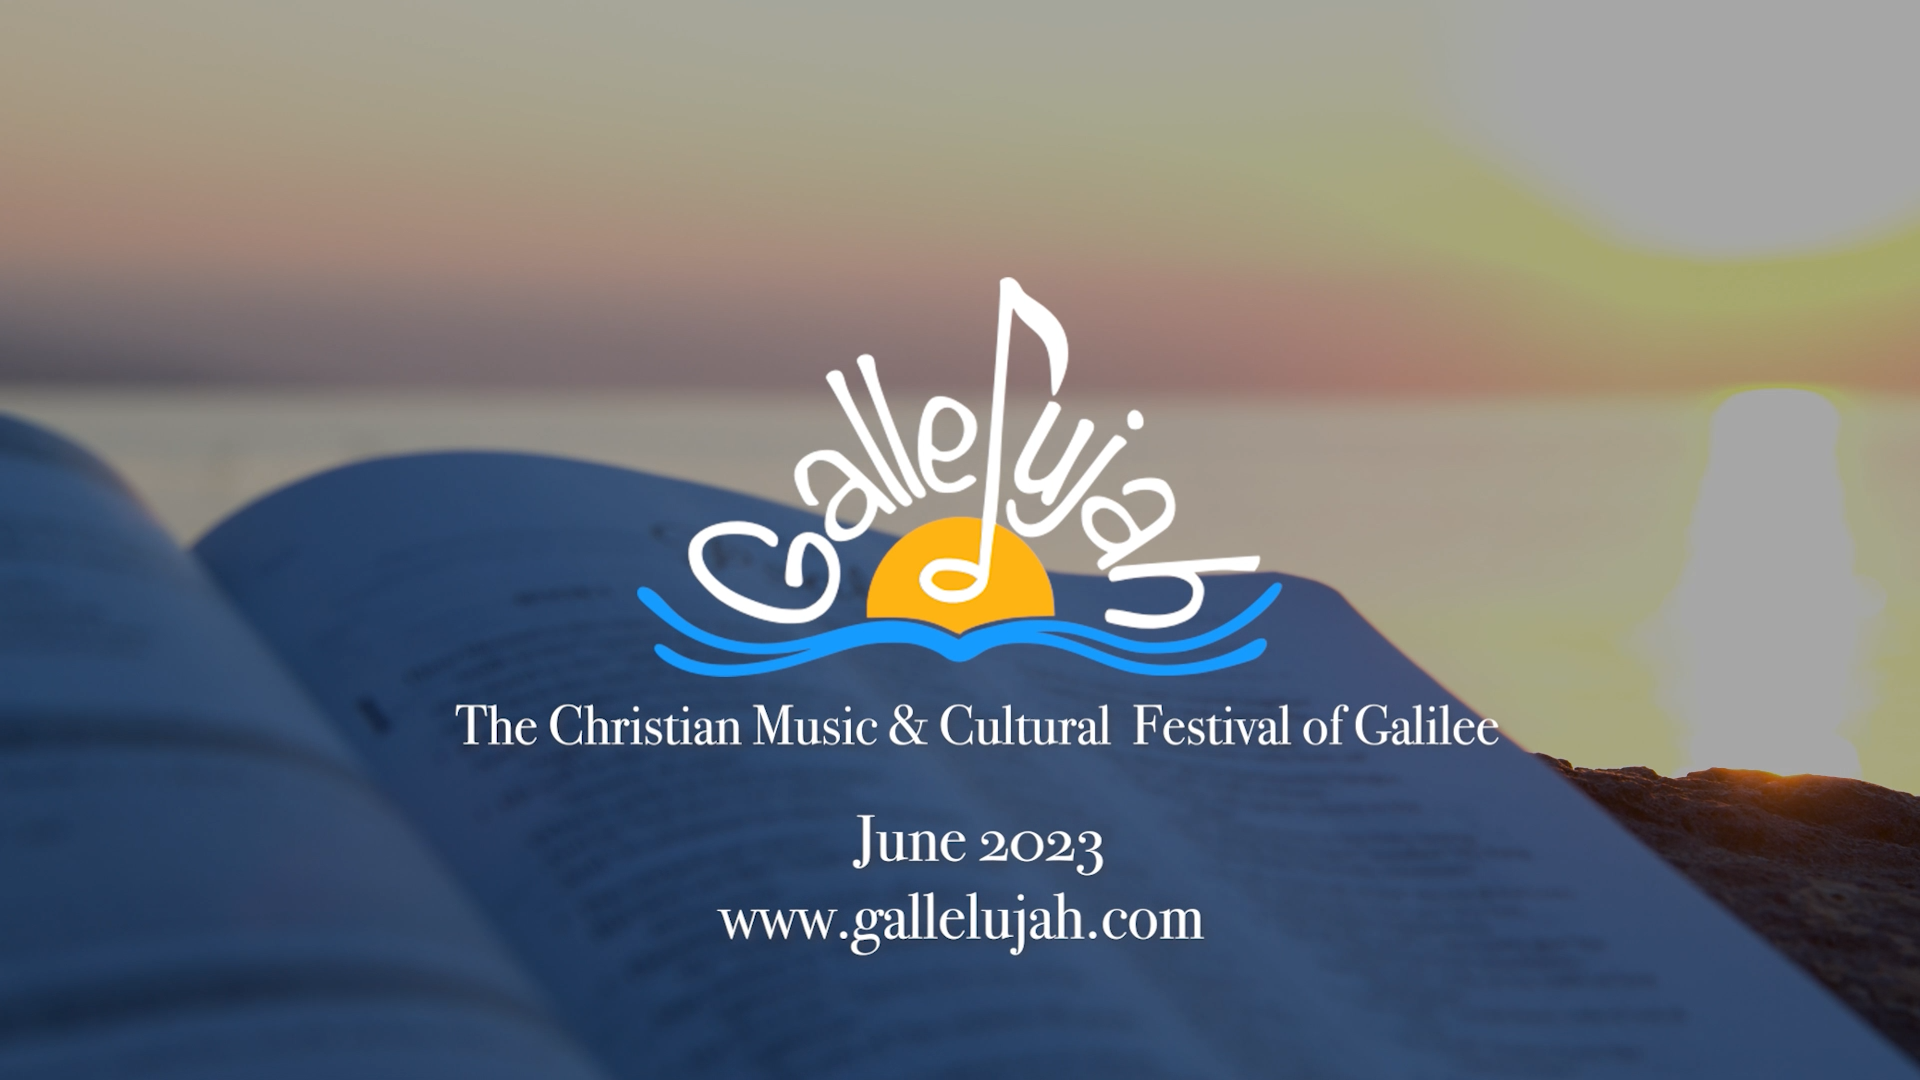 Top Christian Music Artists to Appear at the Gallelujah Festival